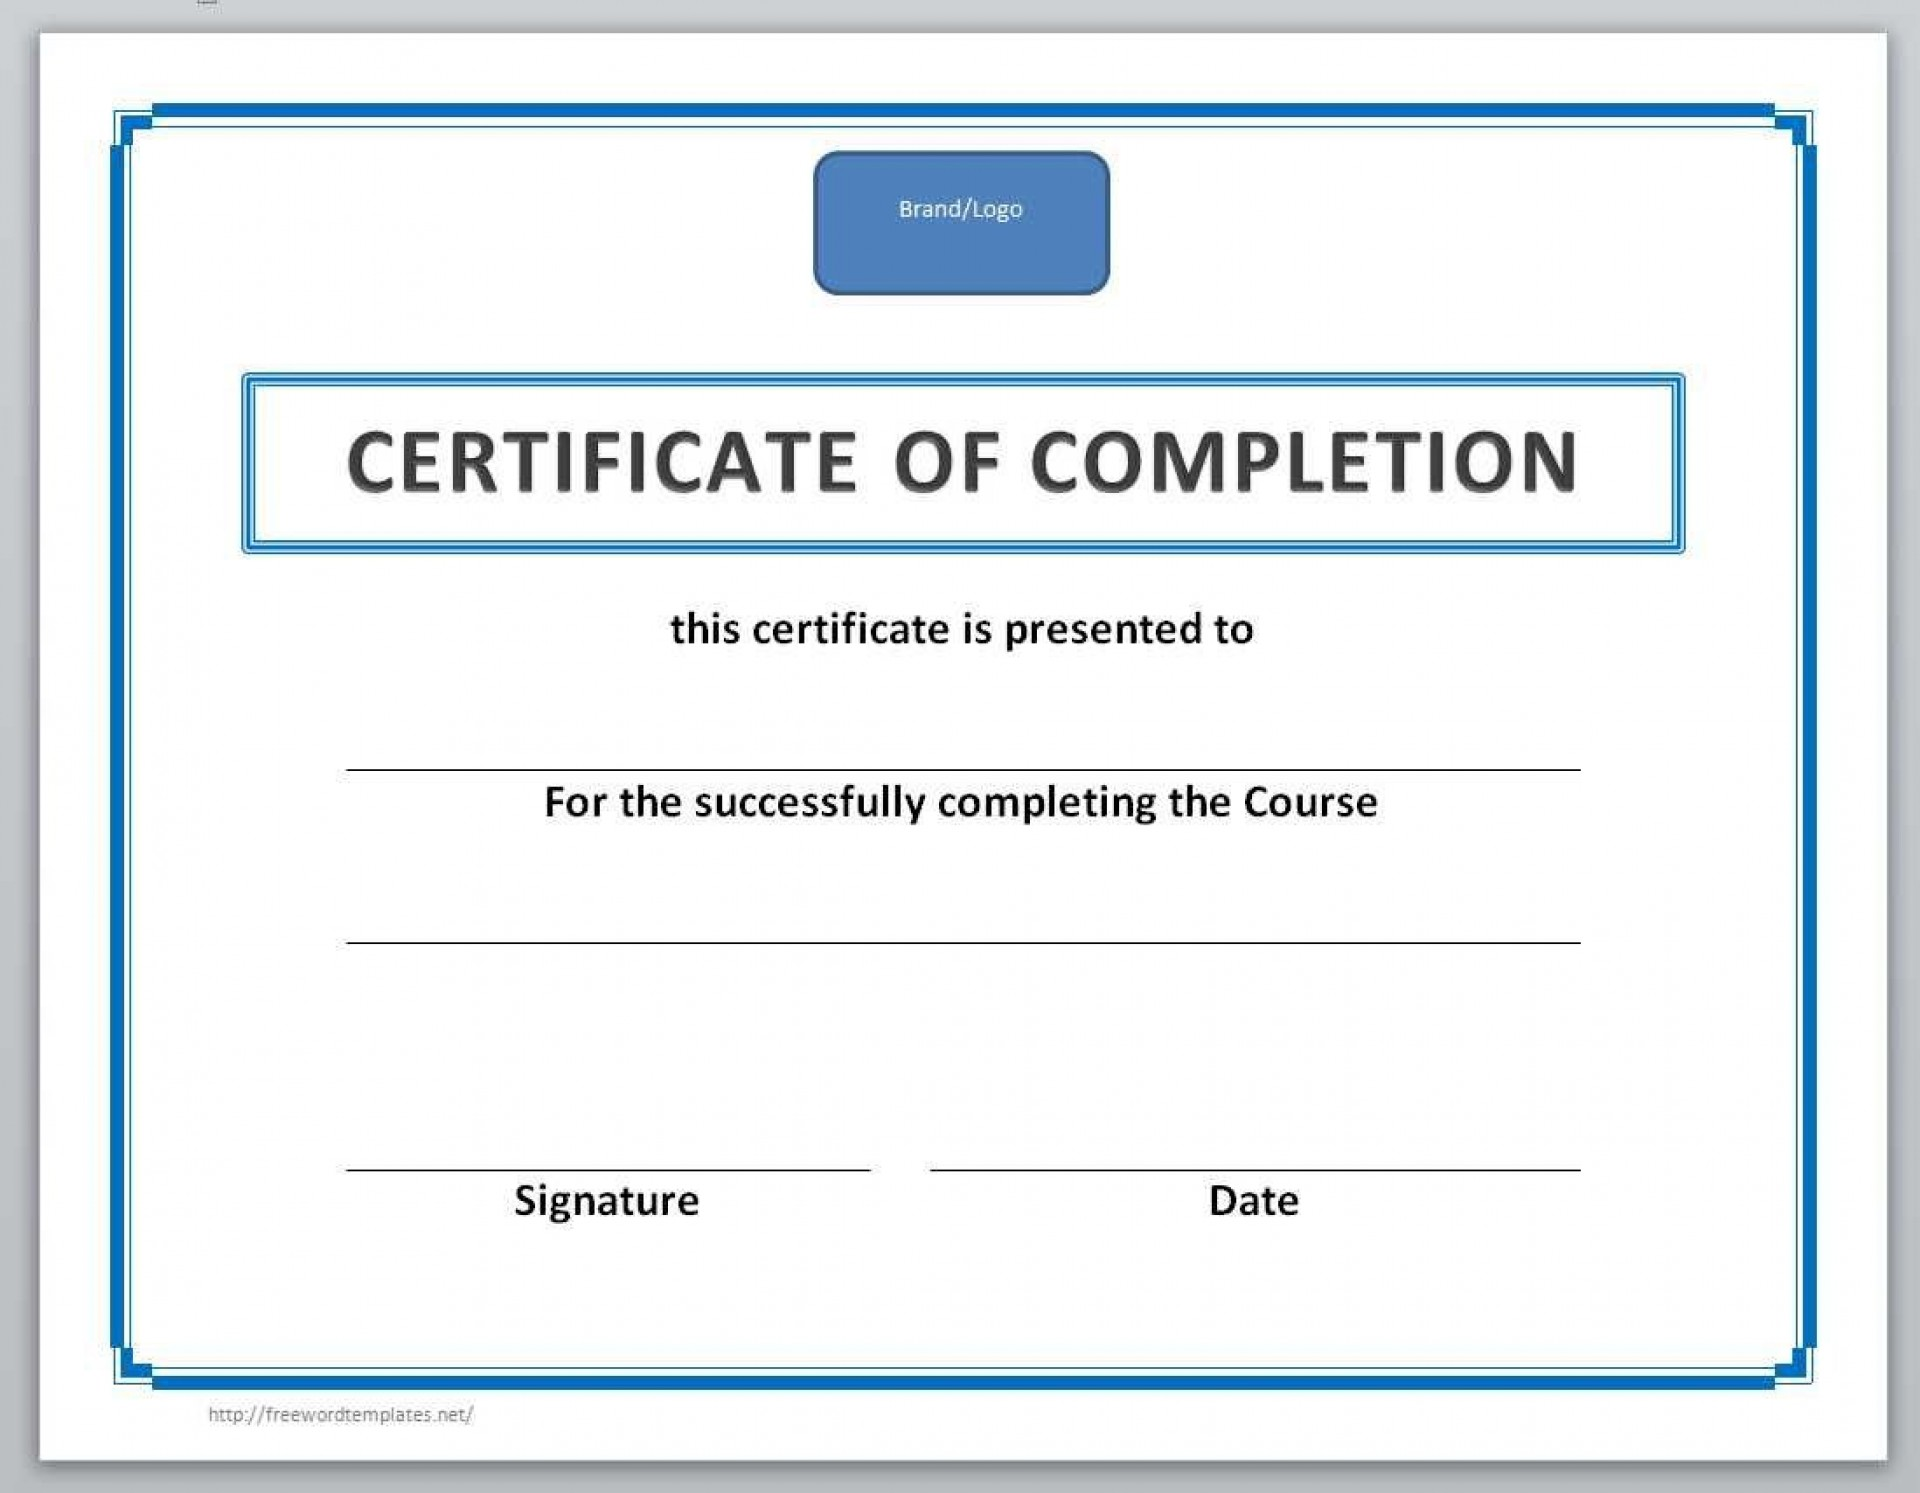 003 Incredible Training Certificate Template Free Image  Computer Download Golf Course Gift Word1920